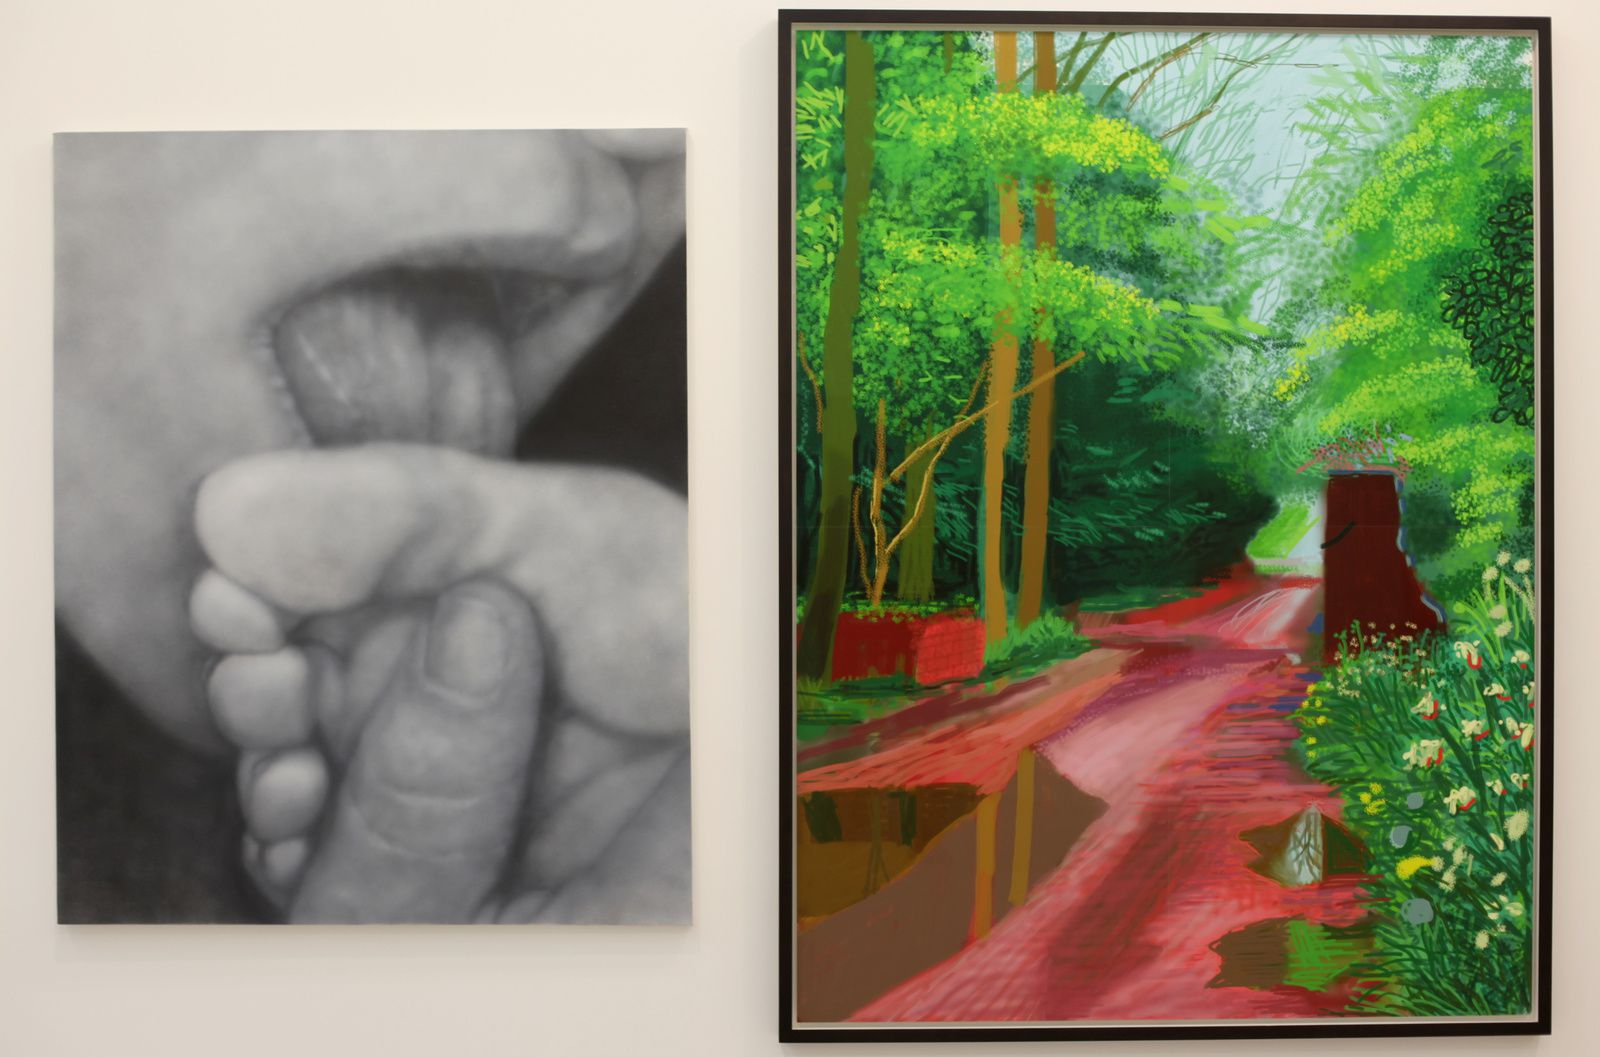 """Sex Painting #4"", 2013 de Betty Tompkins et ""The arrival of spring in woldgate east Yorkshire in 2011"" de David Hockney Courtesy Almine Rech Gallery © Photo Éric Simon"